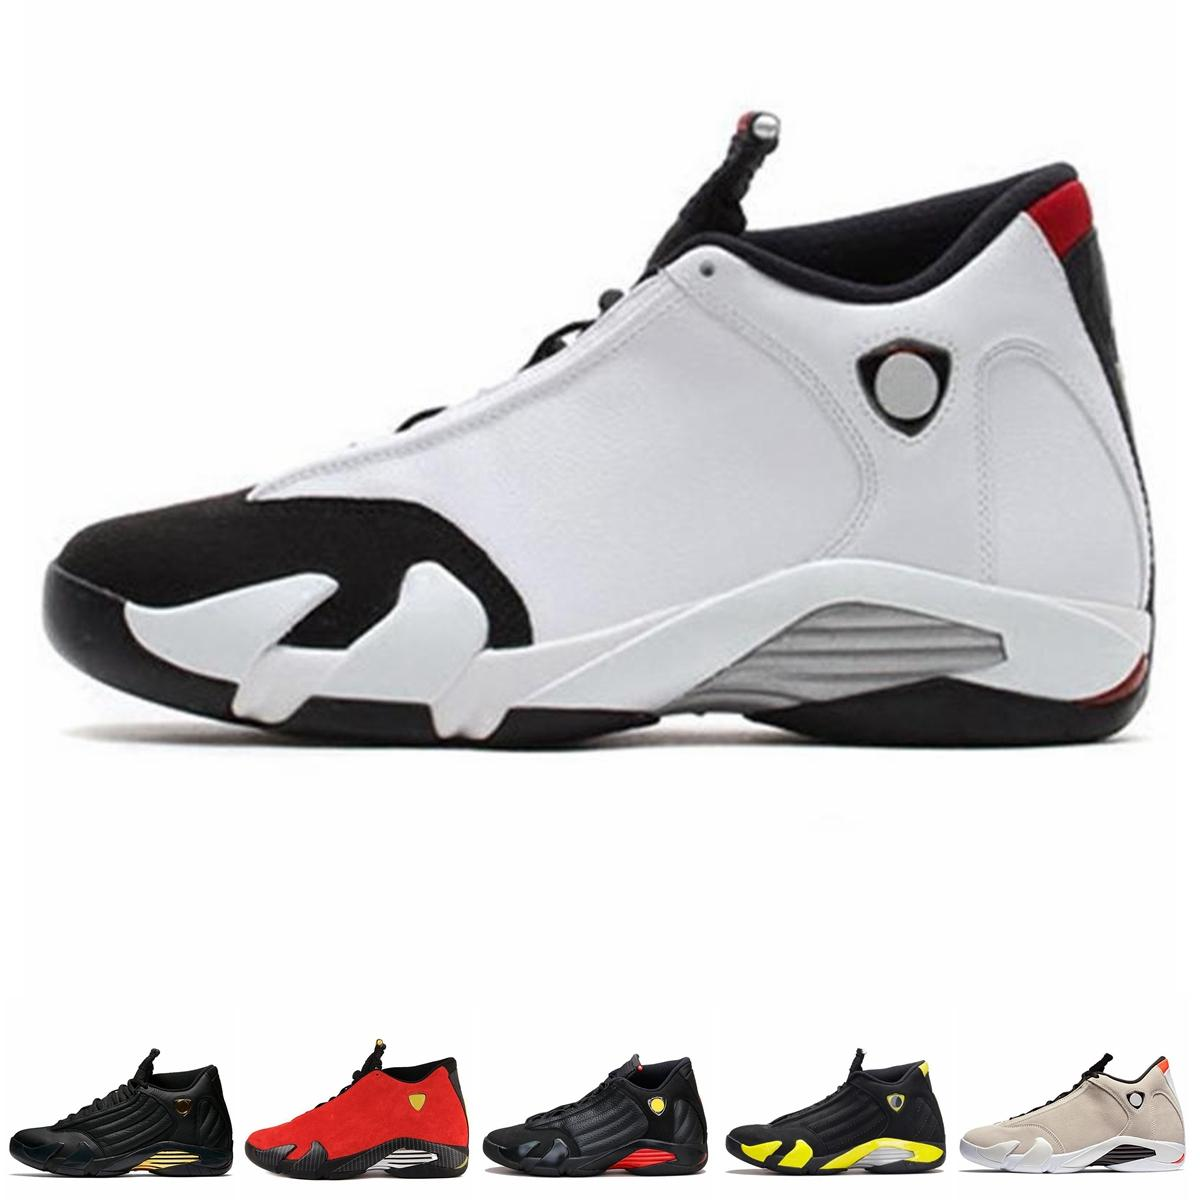 check out 0ad77 599b2 New 14 14s Candy Cane Black Toe Fusion Varsity Red Suede Men Shoes Last  Shot Thunder Black Yellow DMP Sneakers